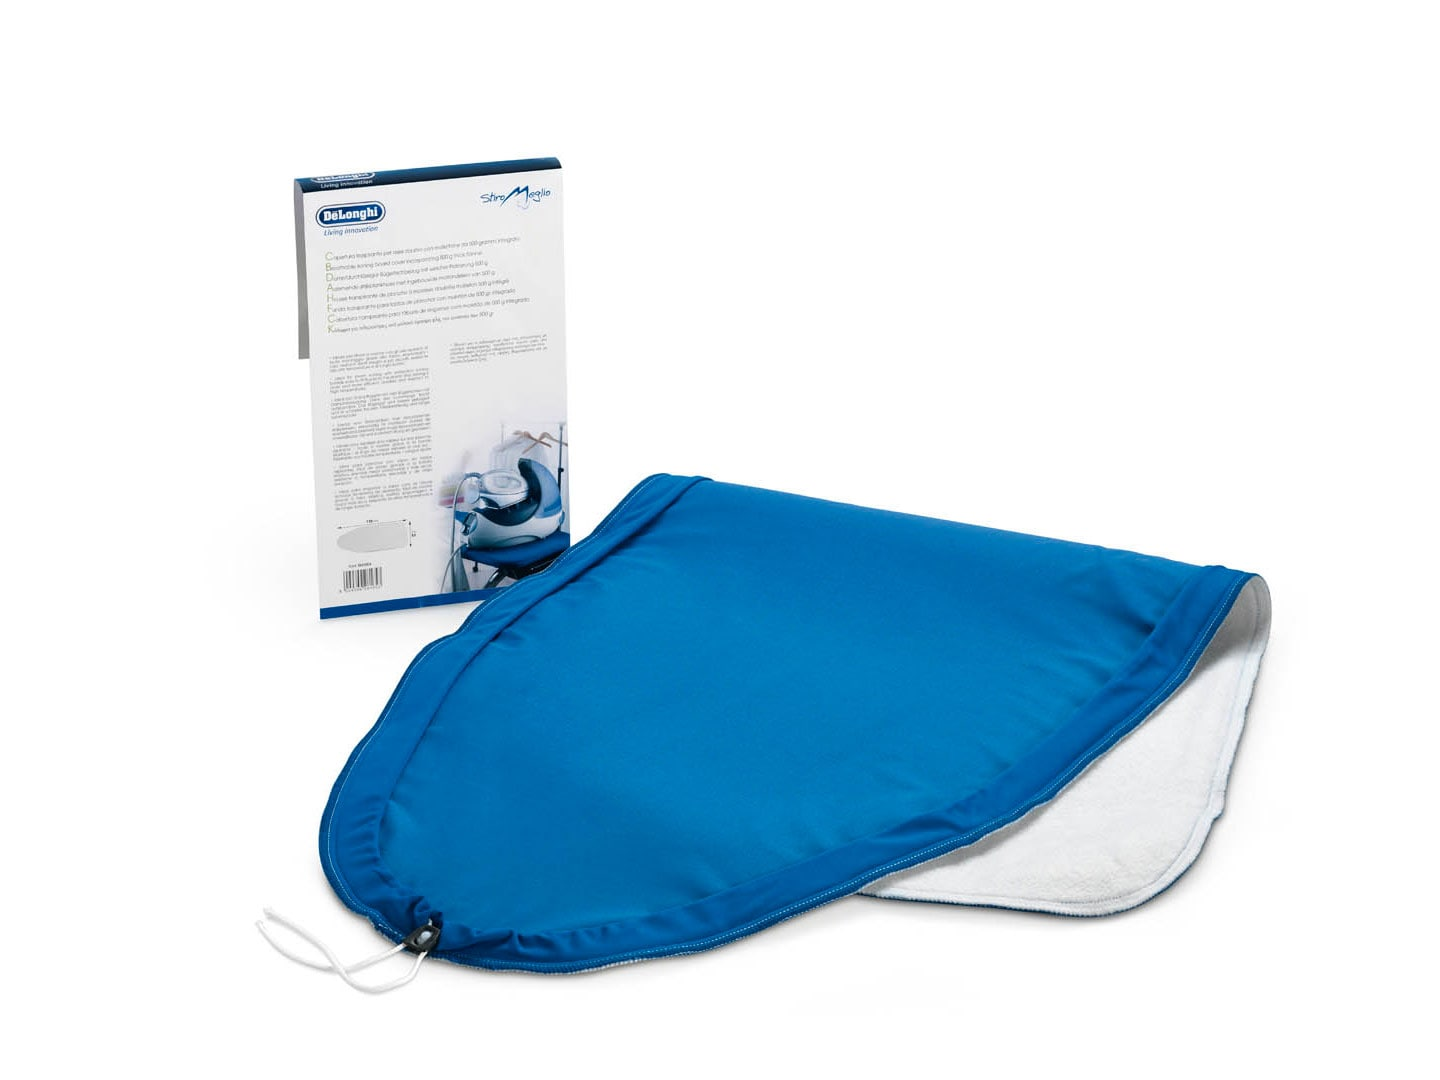 Ironing board cover SER3005